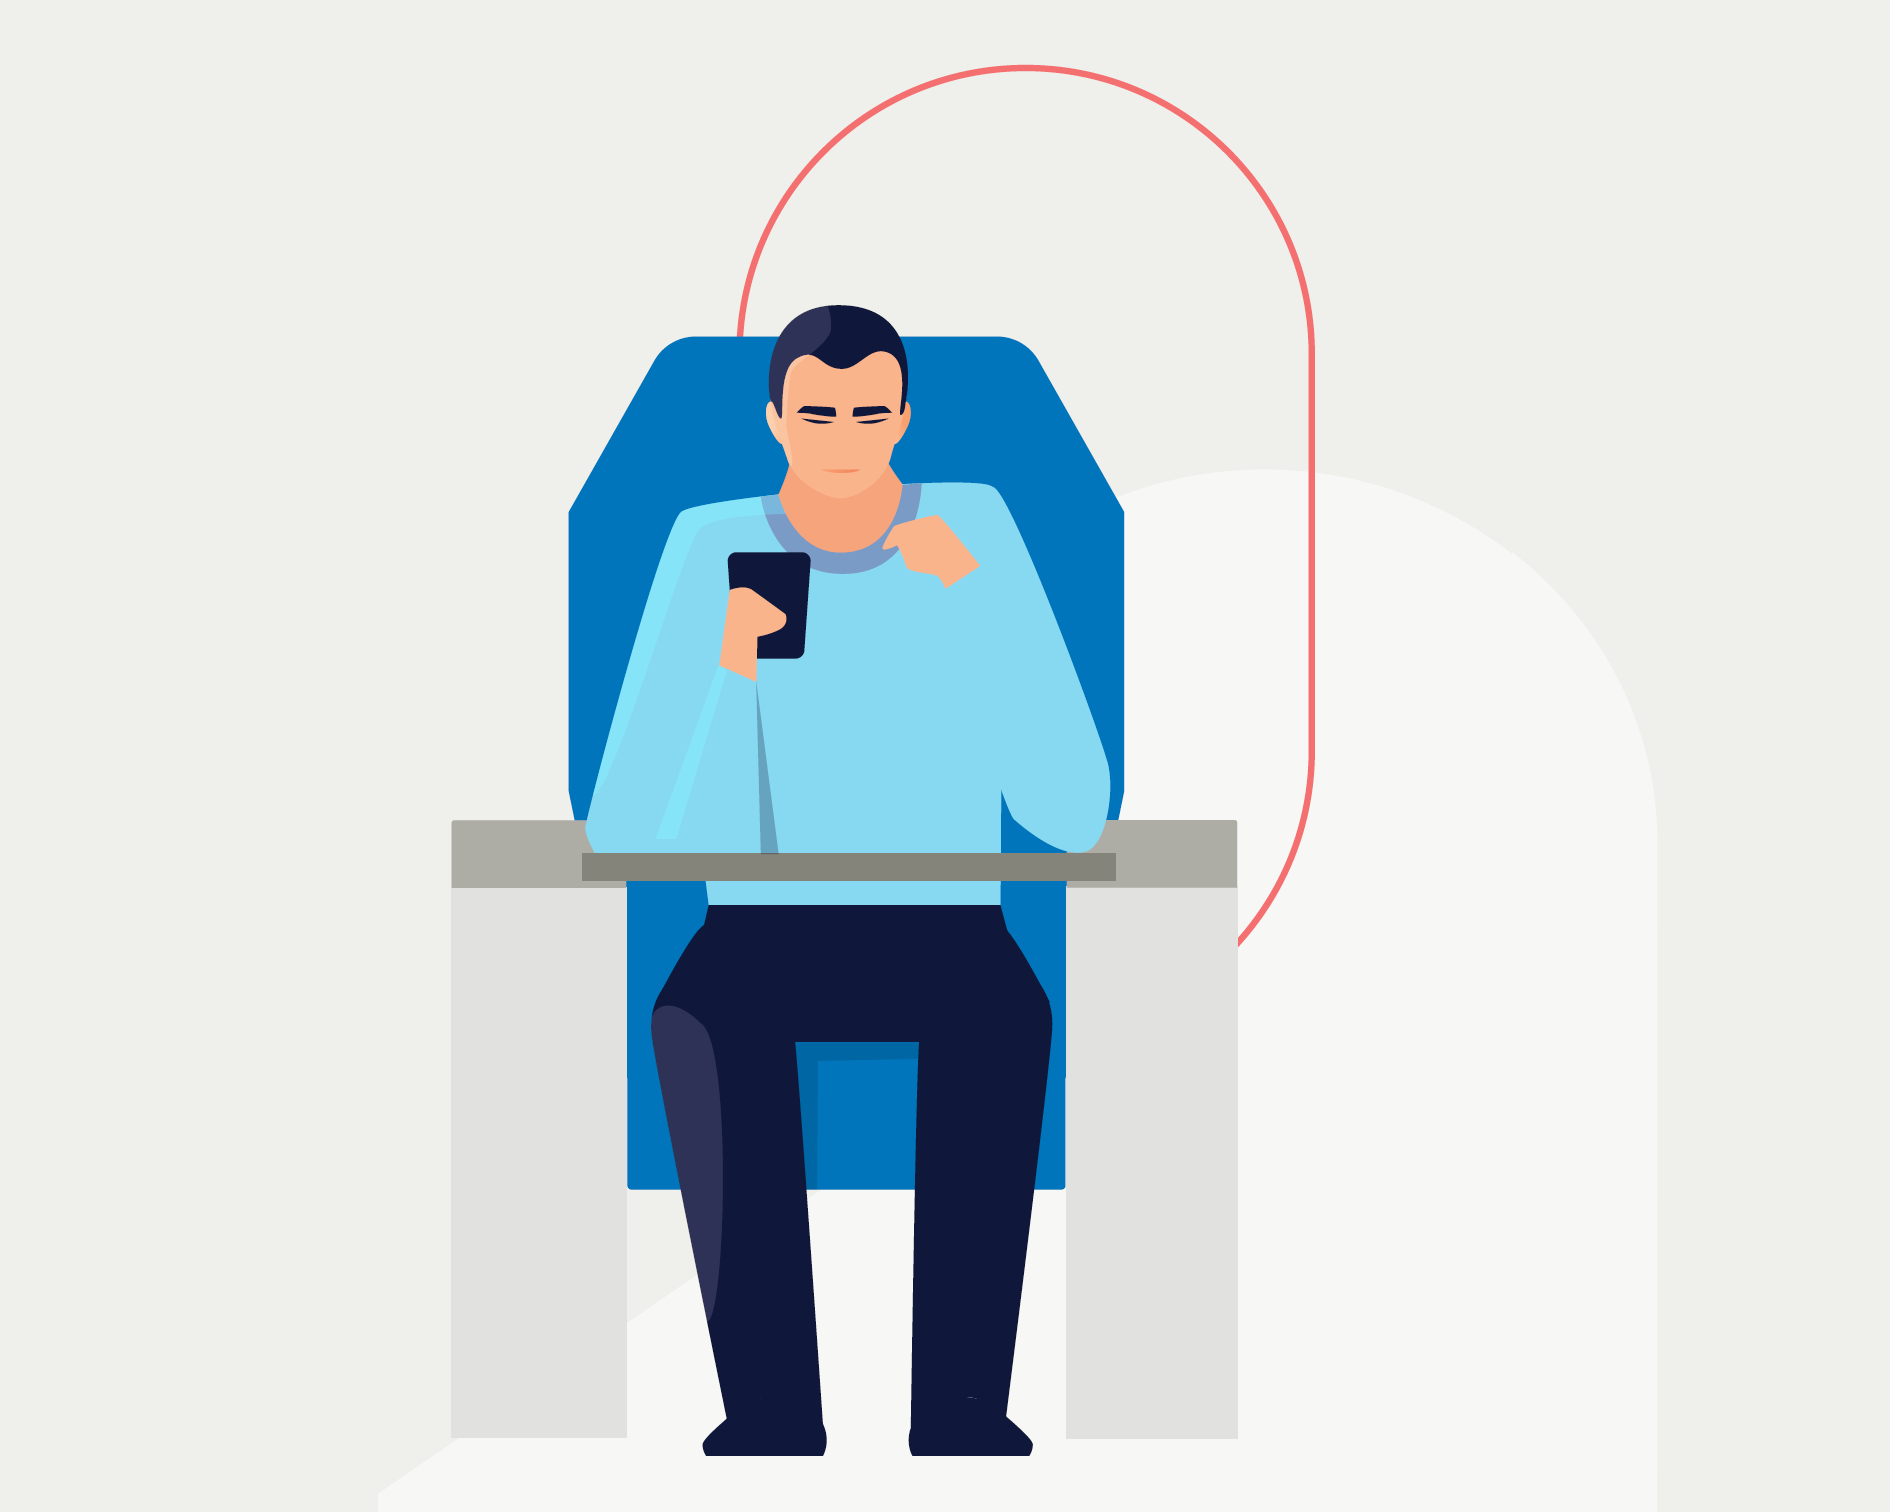 Man with Phone on Plane